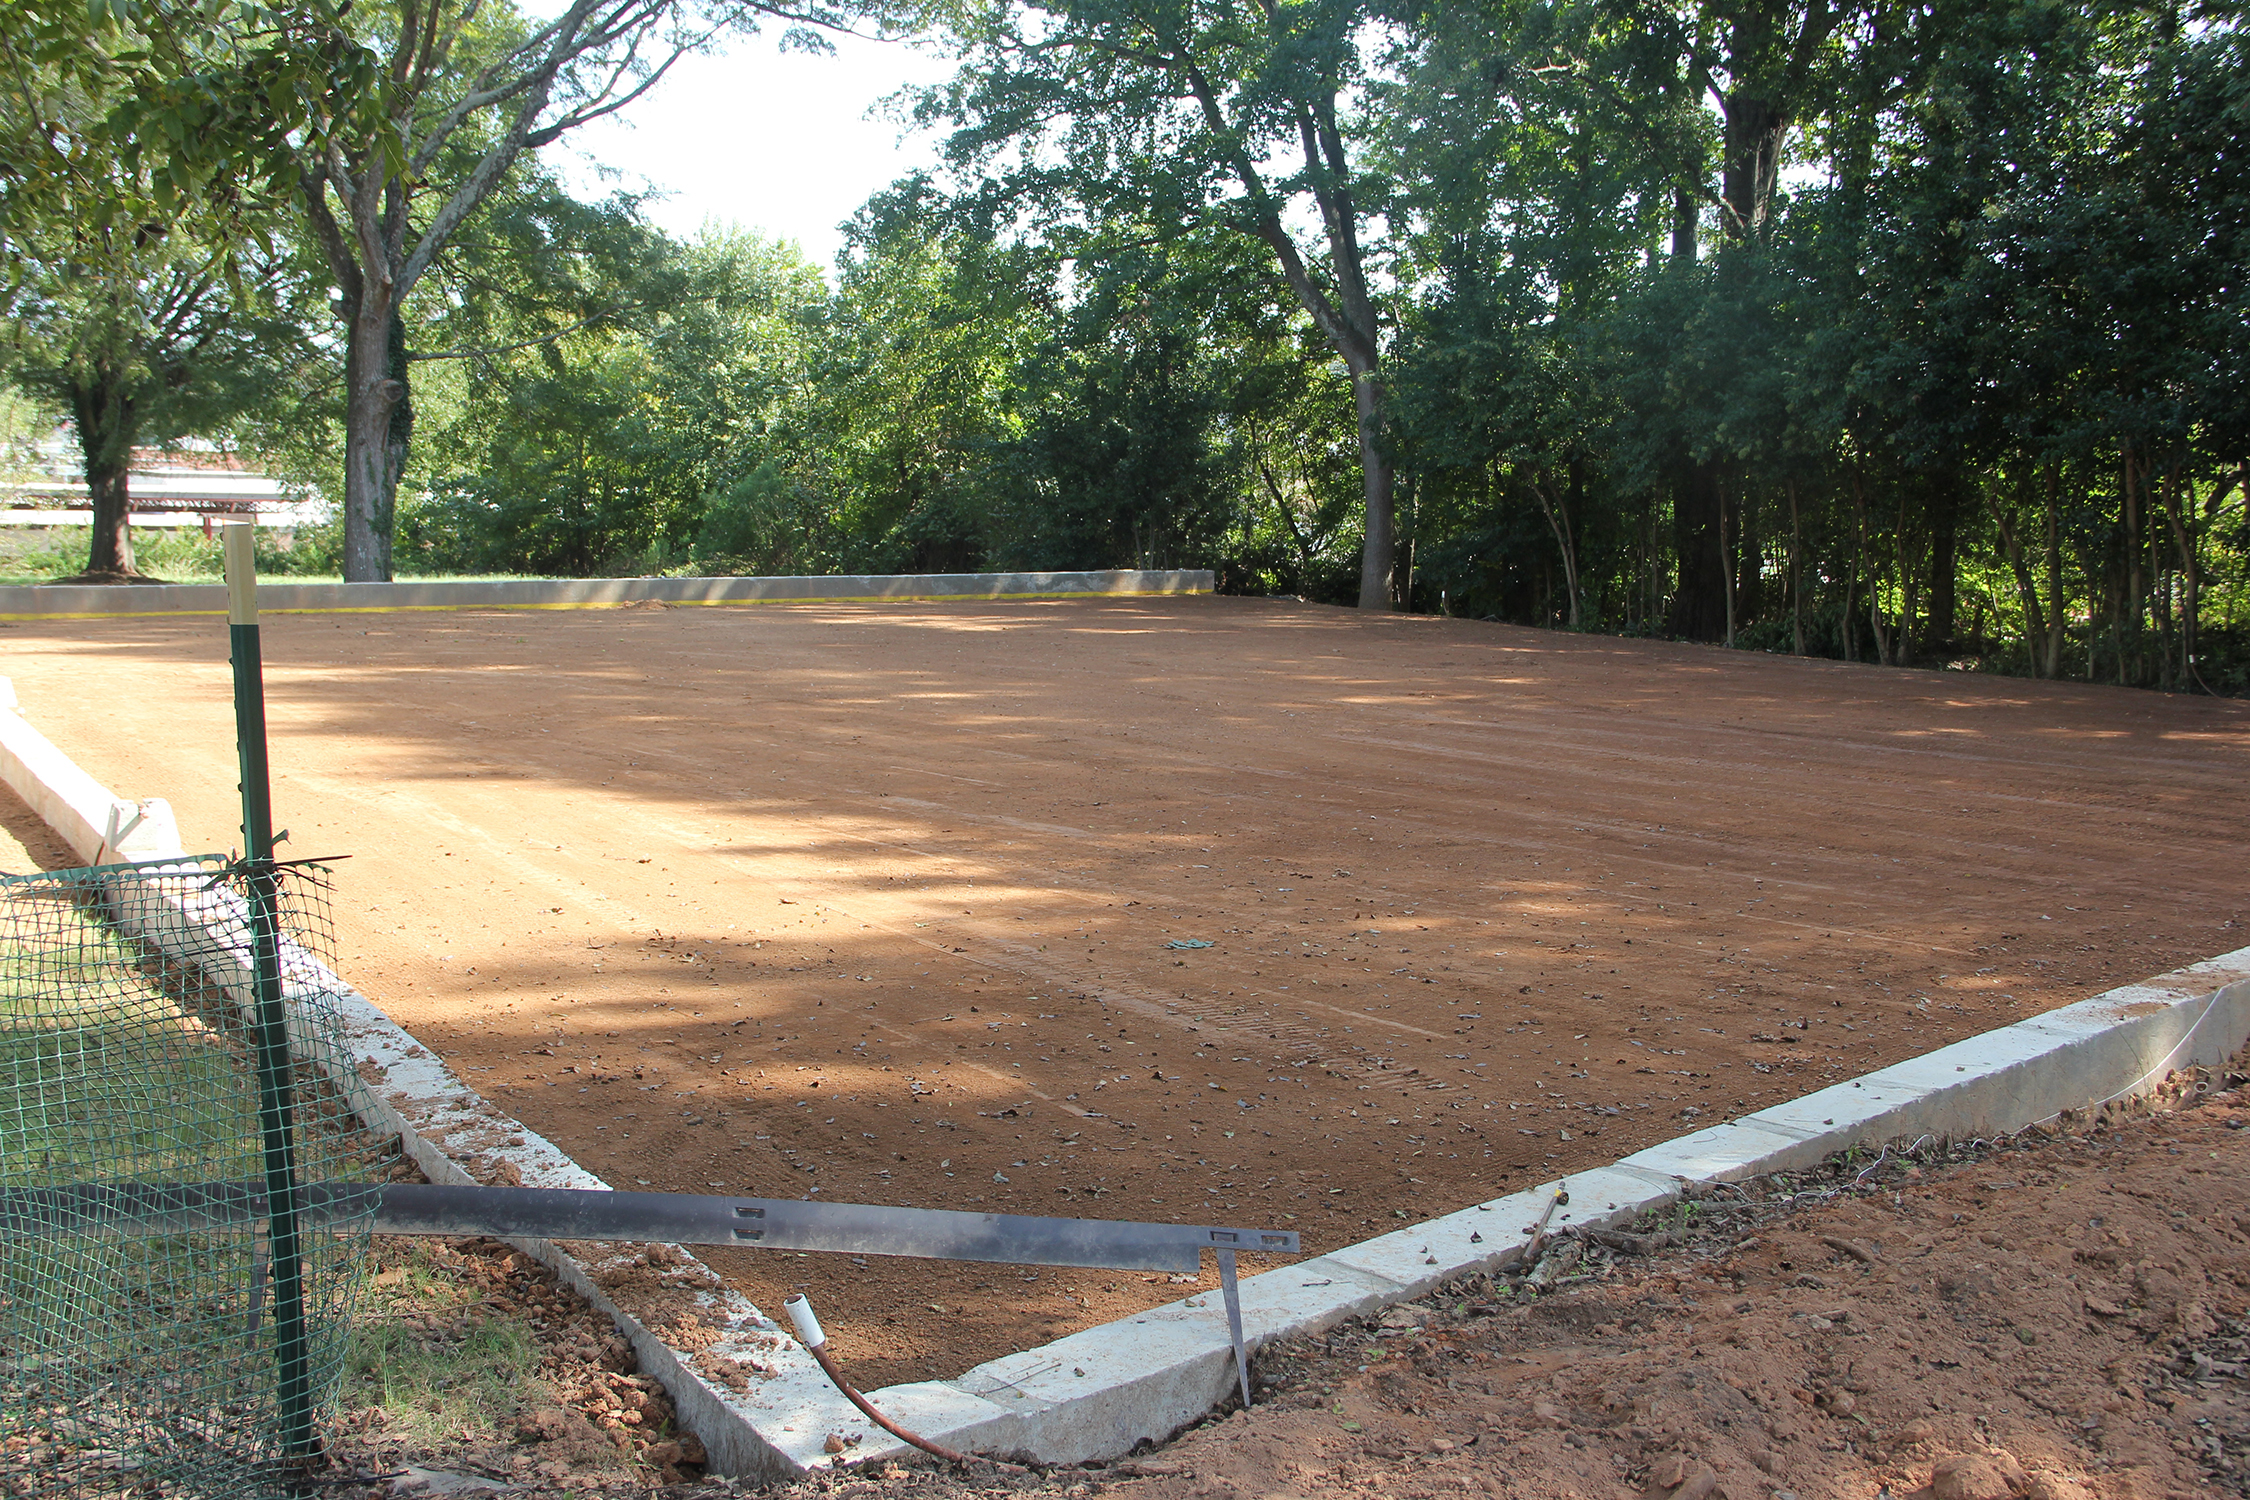 Tofano has a leveled and compacted area in his backyard prepared for a full-sized bocce ball court.